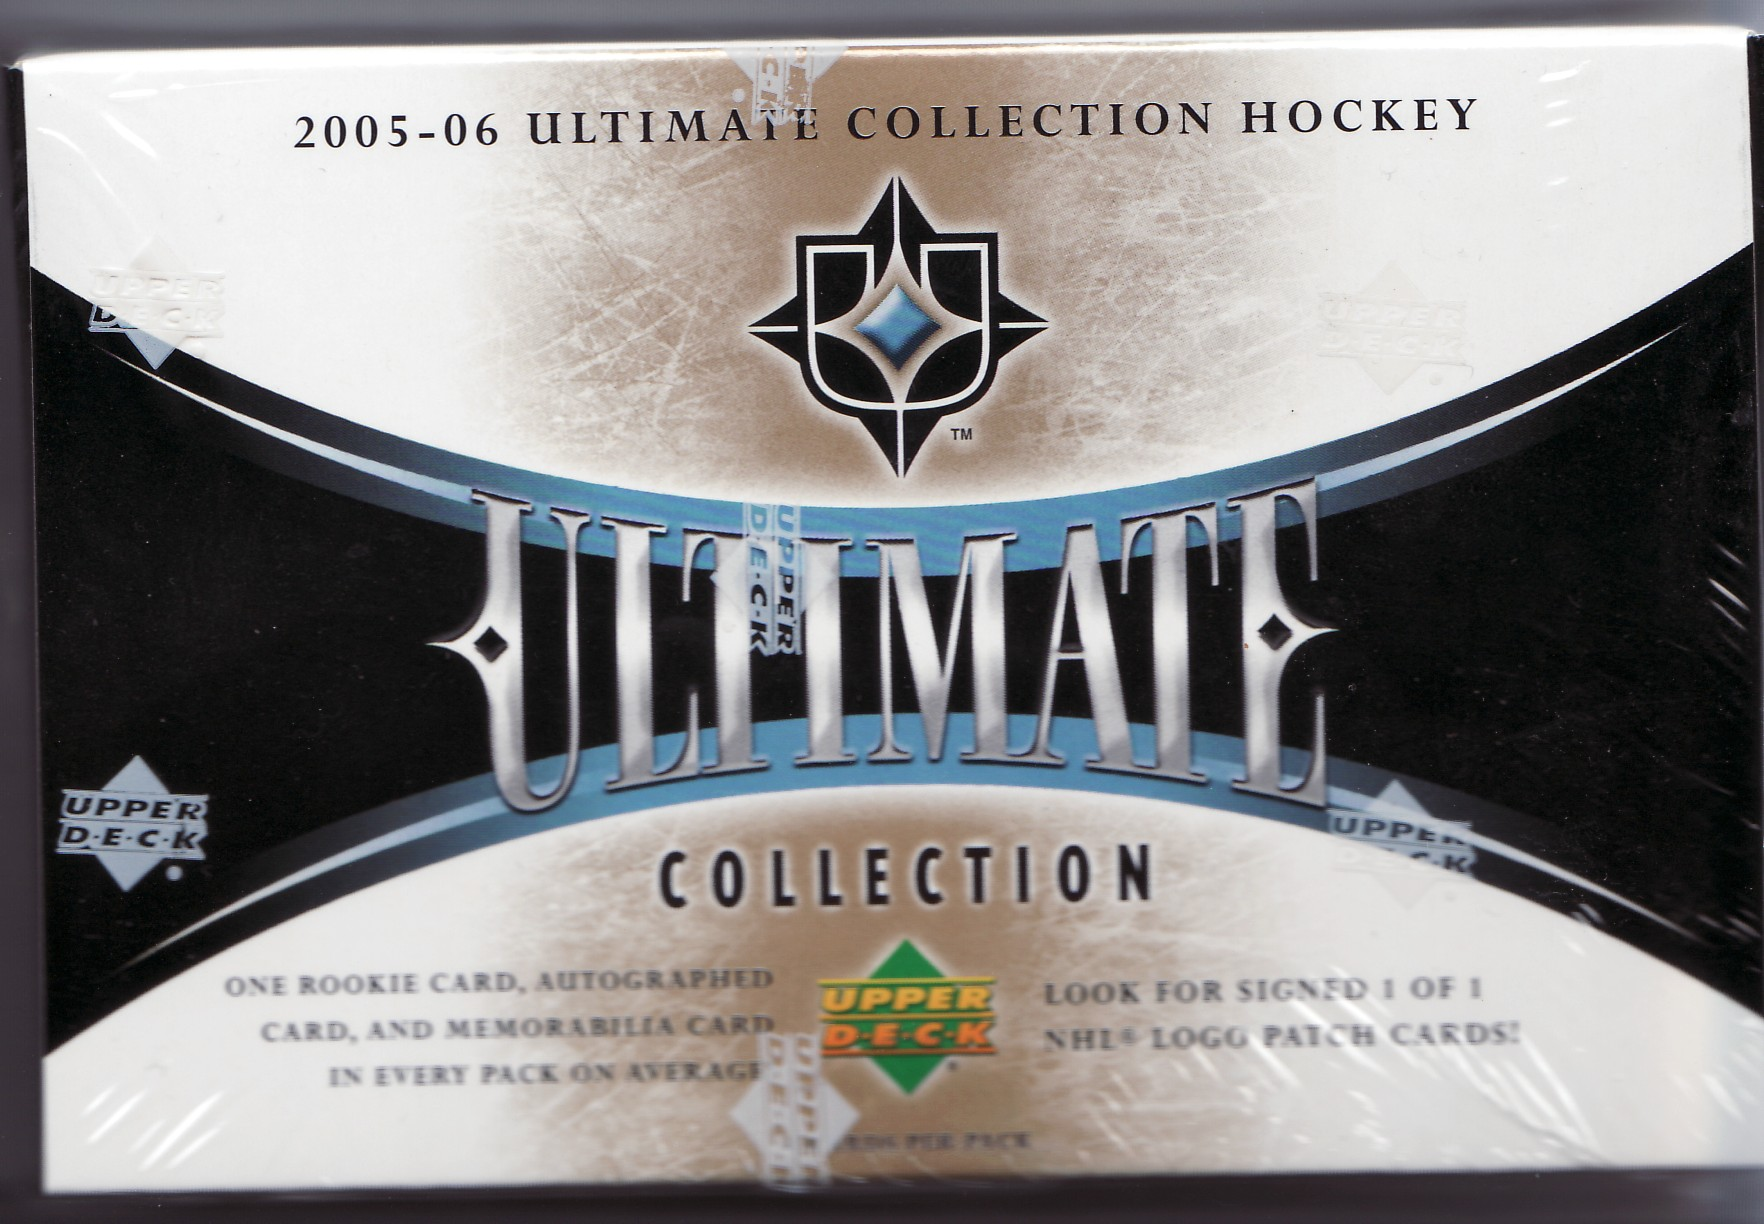 2005-06 Upper Deck Ultimate Collection Basketball Factory Sealed Hobby PACK (1 Autograph, Autographed Rookie, Jersey or Patch Card in Every Pack) (2005, 2006, 05/06, 05/6)